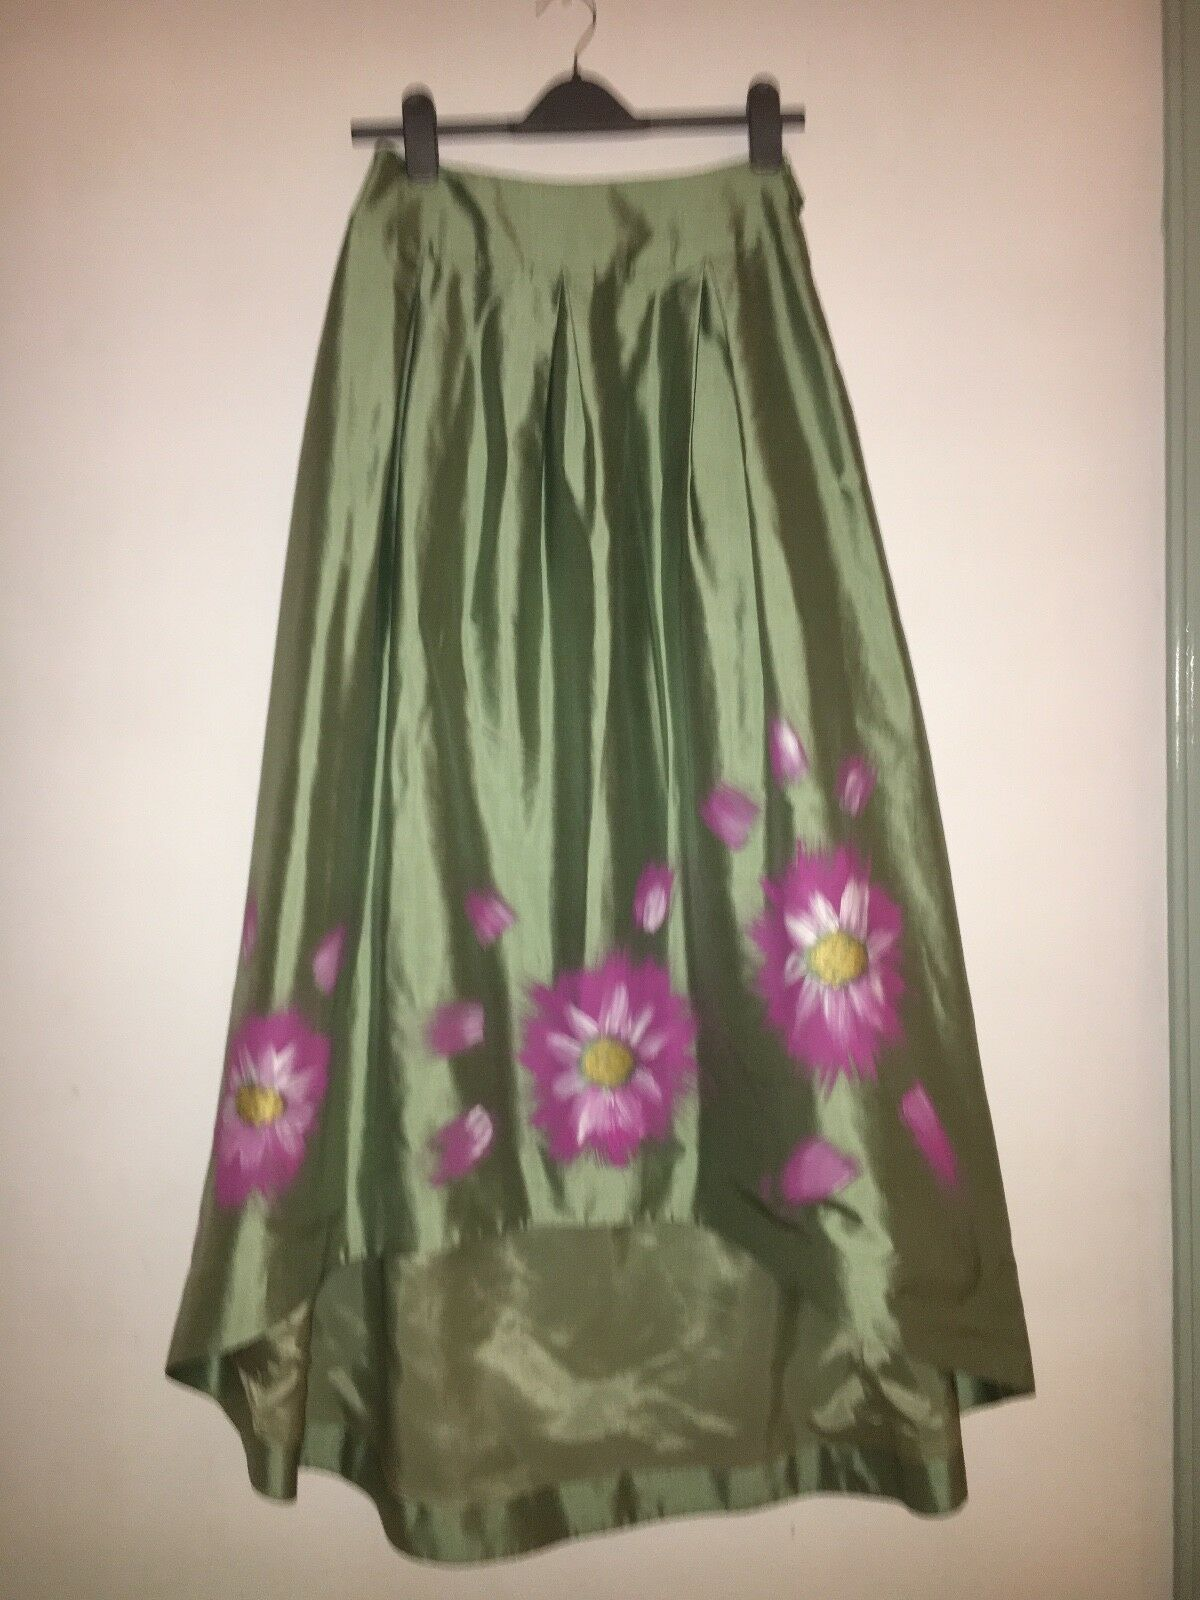 Laura Bernal Silk Tafeta Skirt Size 10 Green with Hand-Painted Flowery Pattern